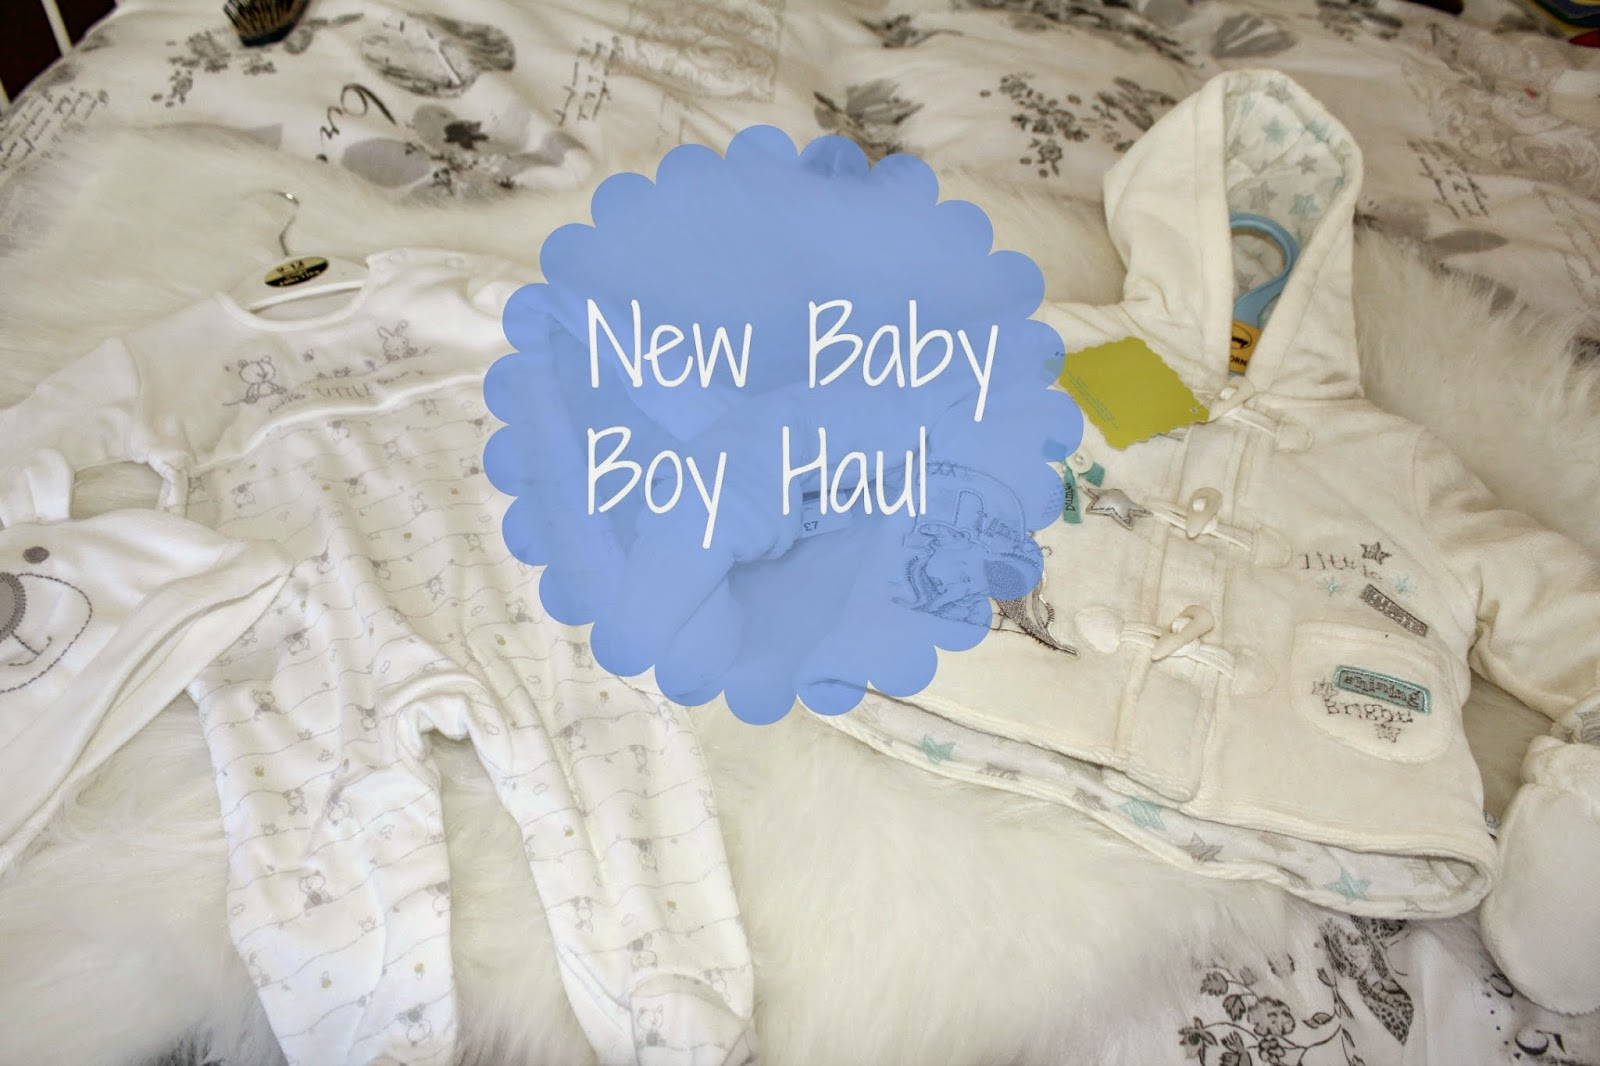 8a9ce4332020 Baby Boy Haul So Far! | Sparkles and Stretchmarks: UK Mummy ...